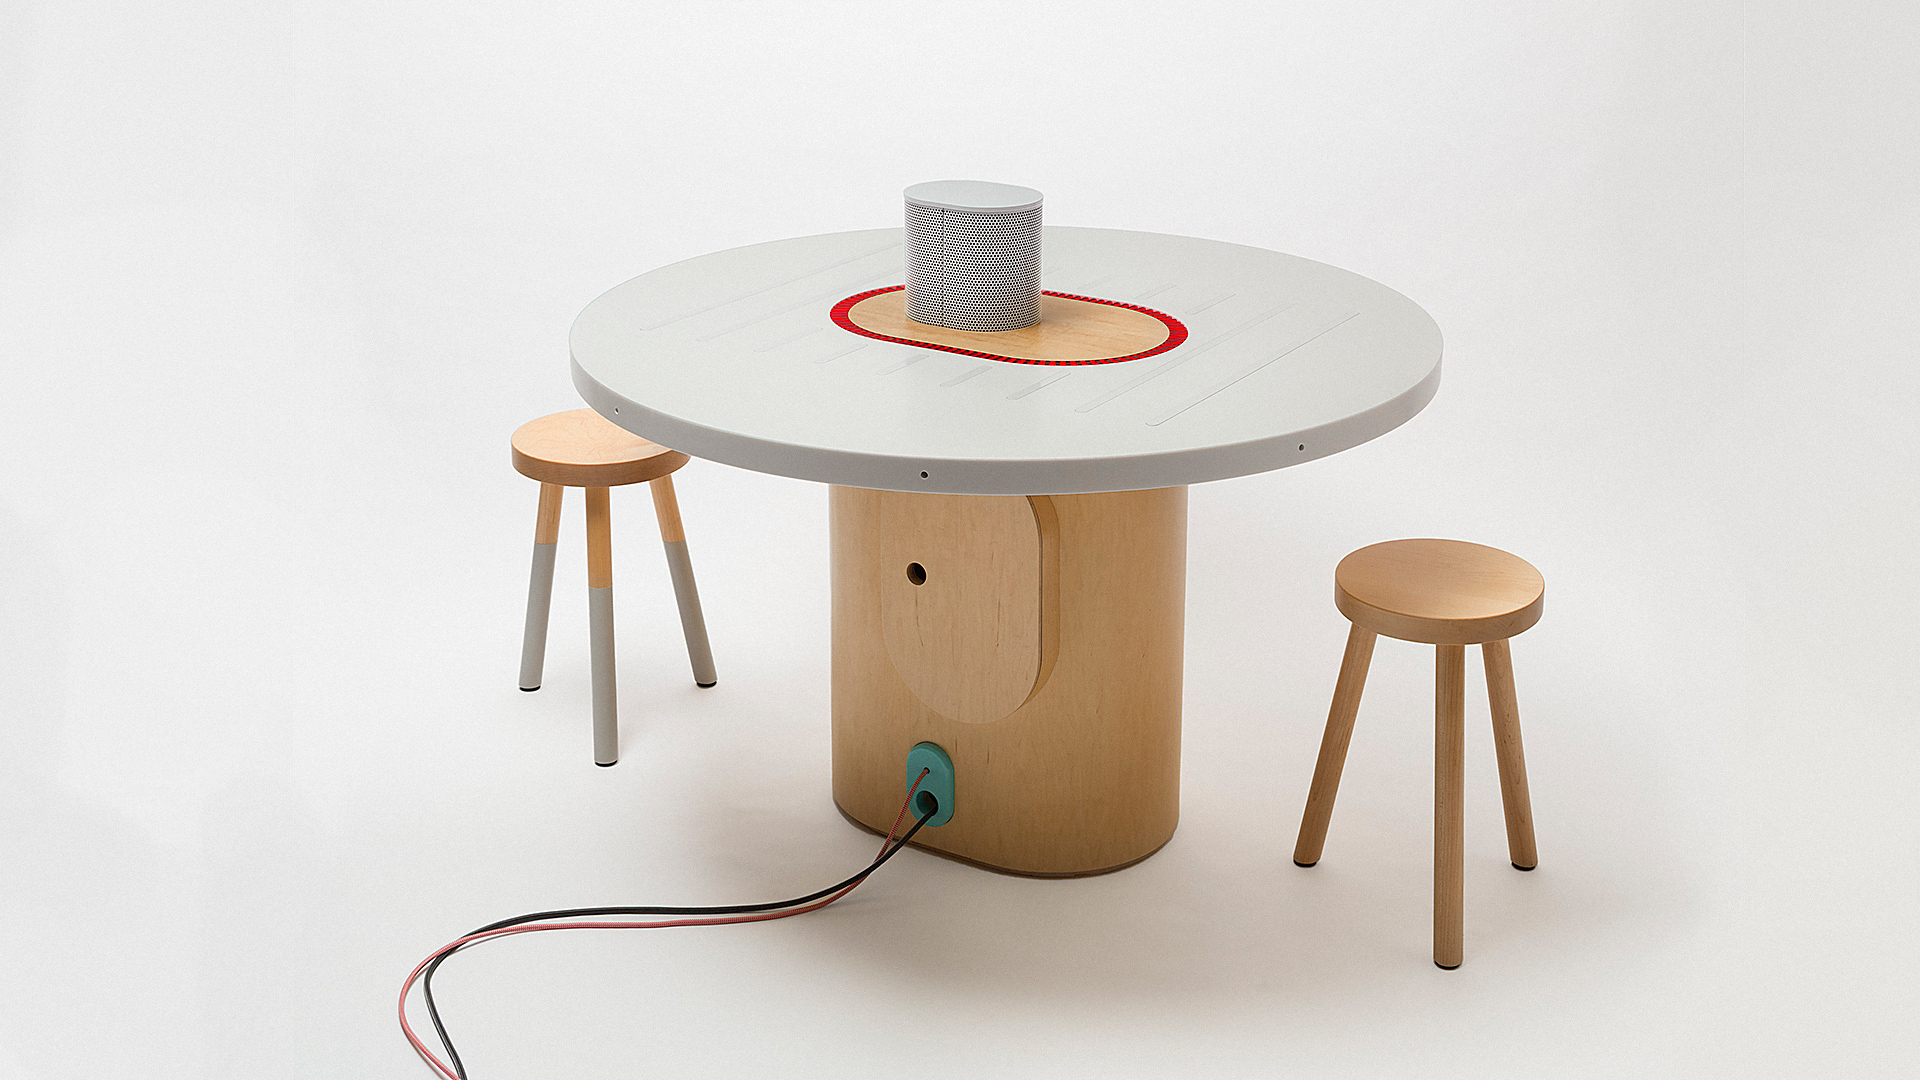 3045100-poster-p-2-the-new-york-times-invents-a-conference-table-that-listens-in